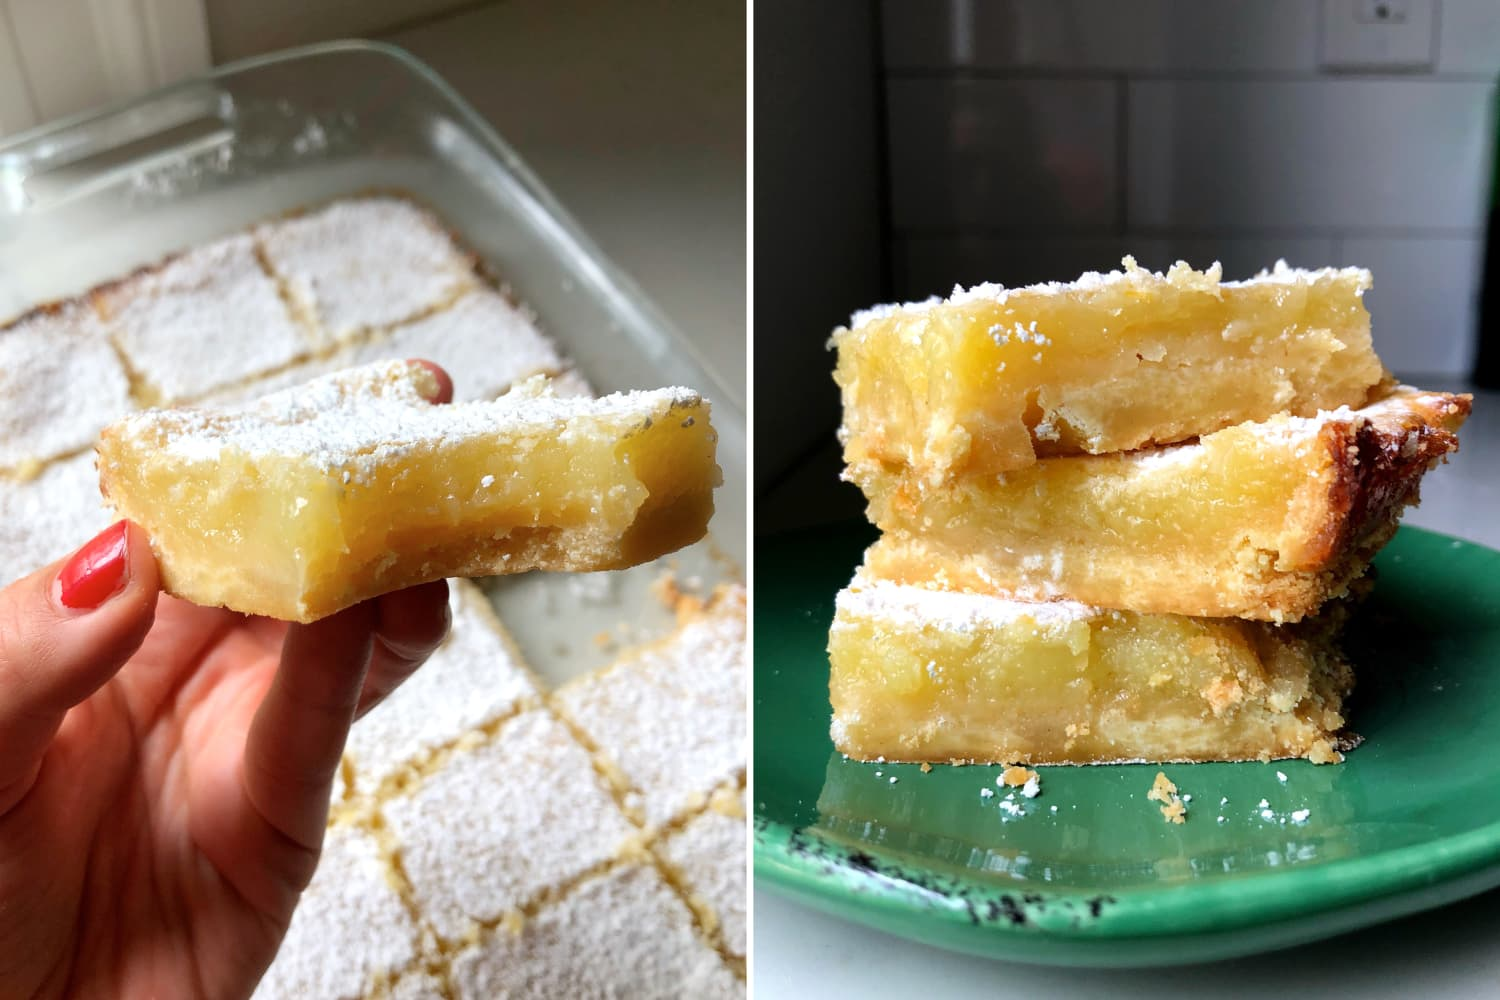 I Tried the Grandma Lemon Bars Going Viral on Reddit